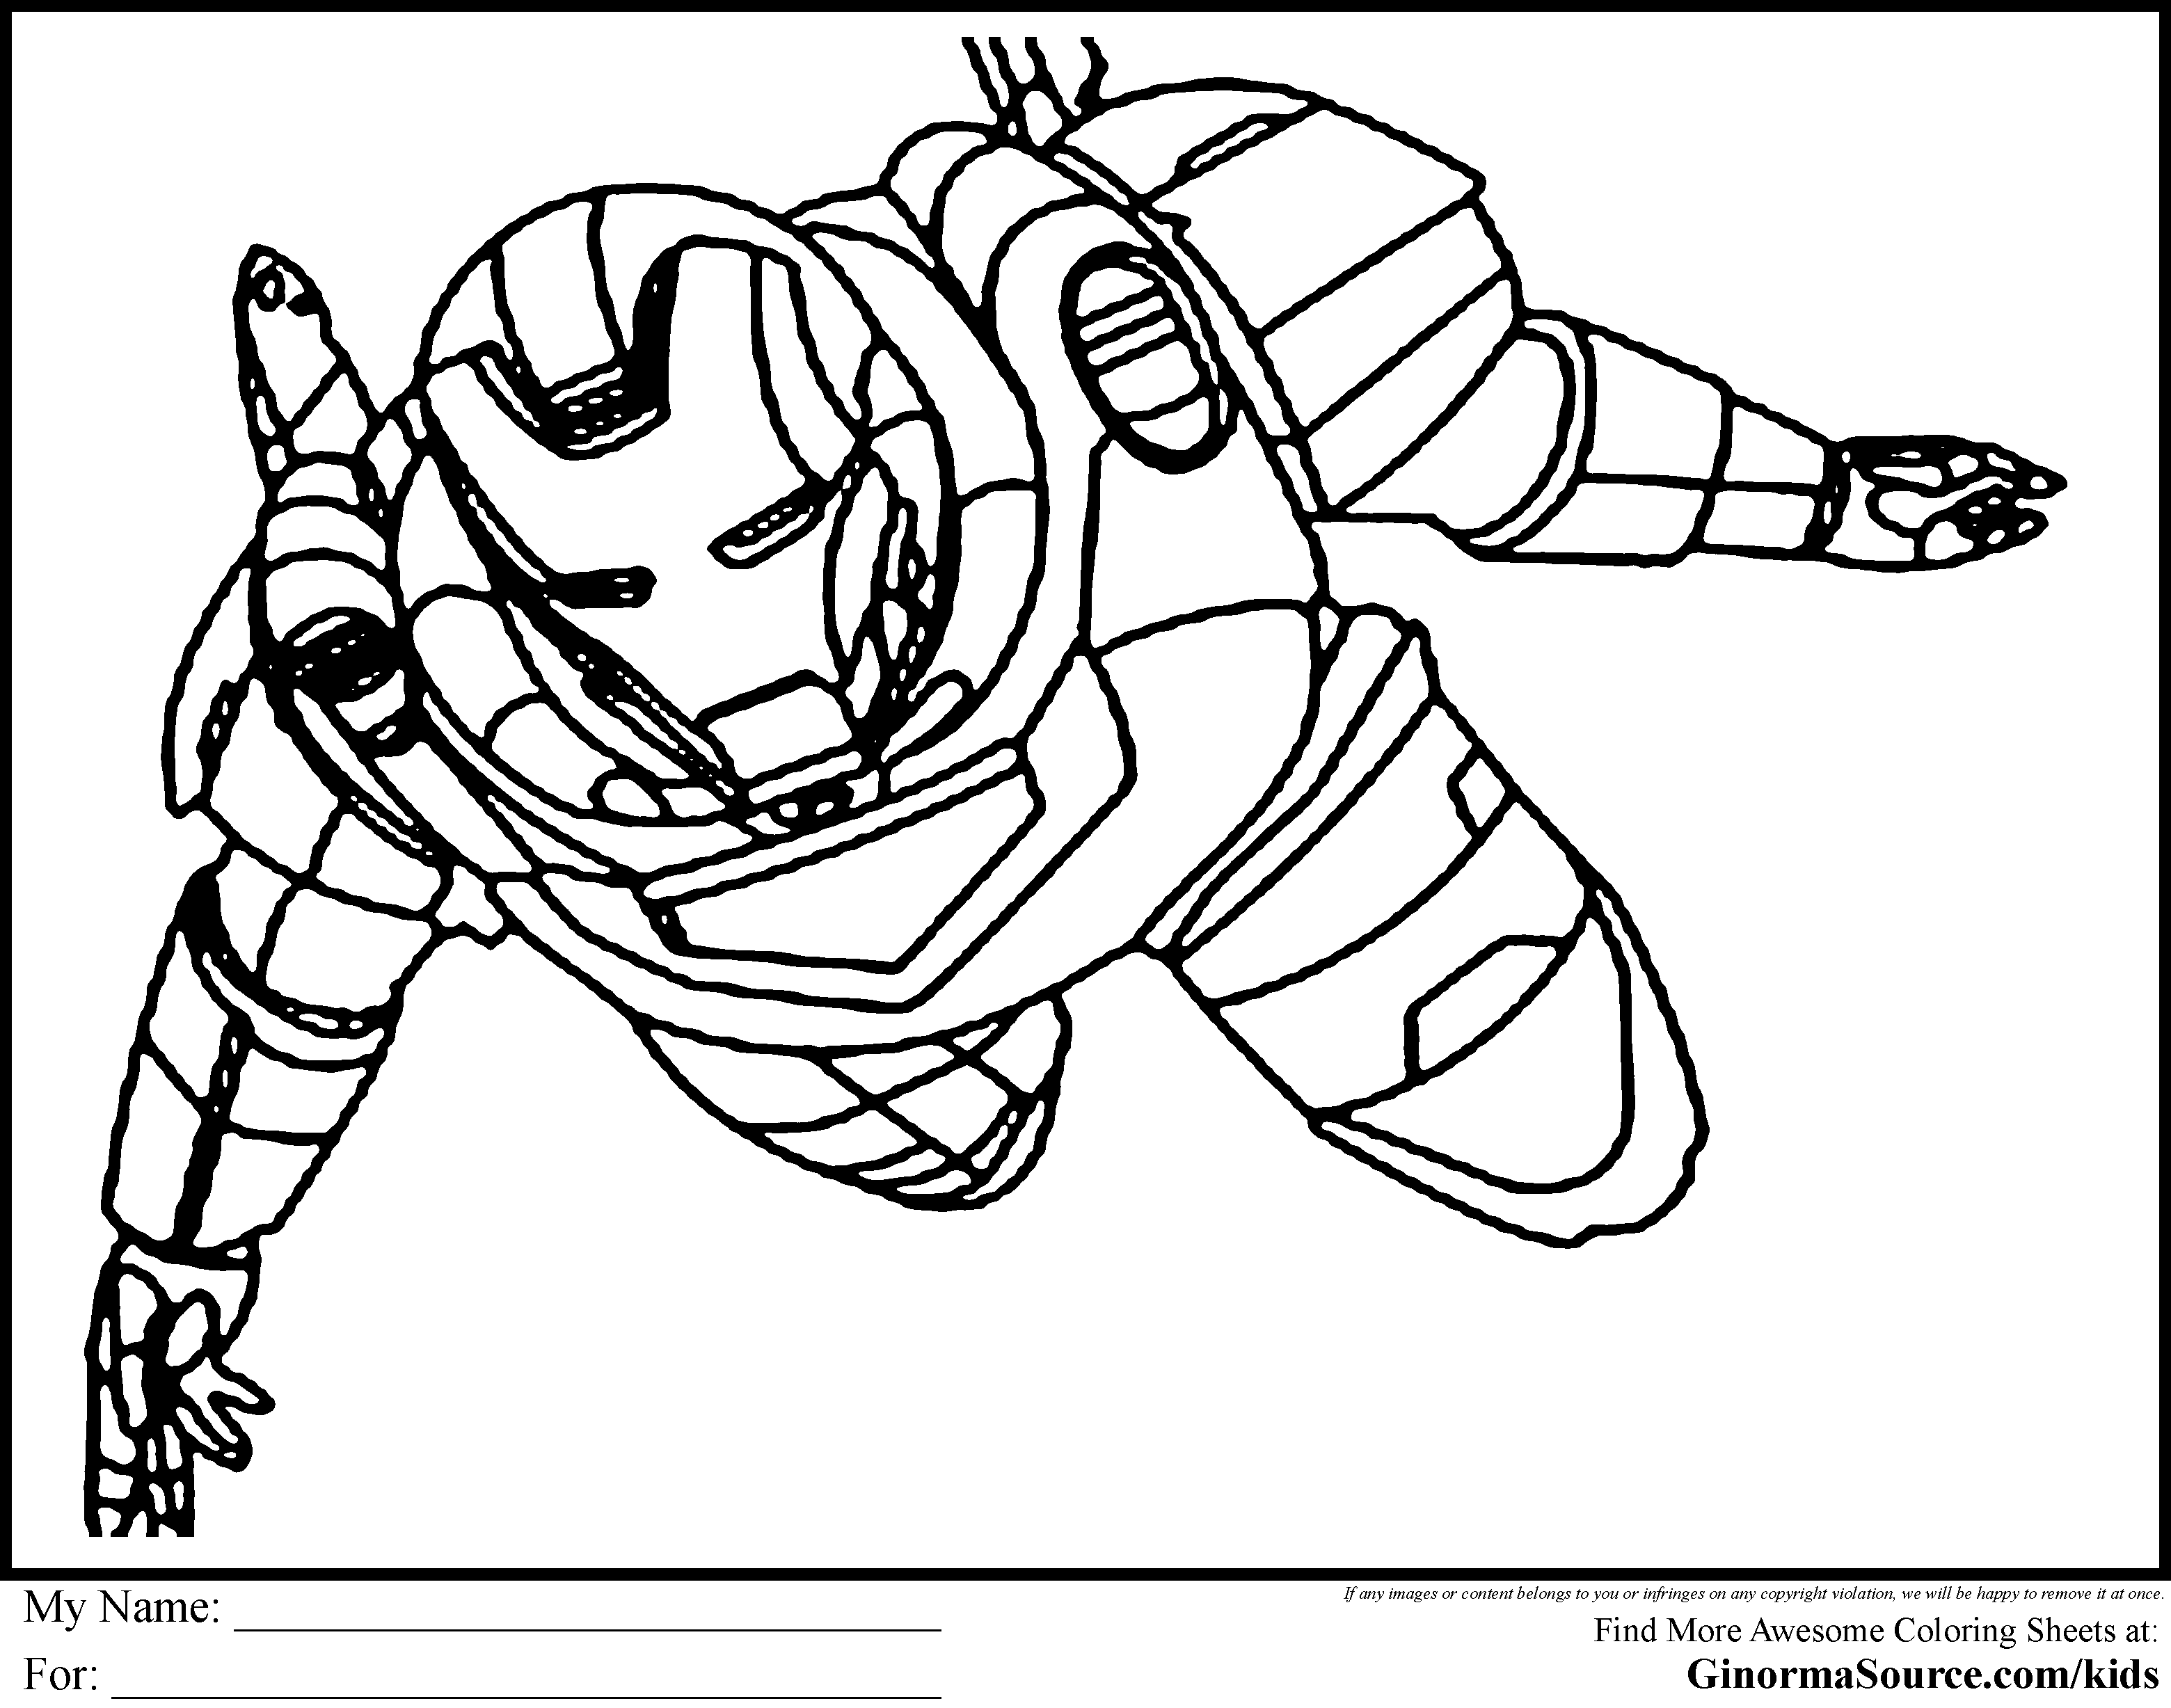 Coloring Pages Pdf : Superhero coloring pages pdf home